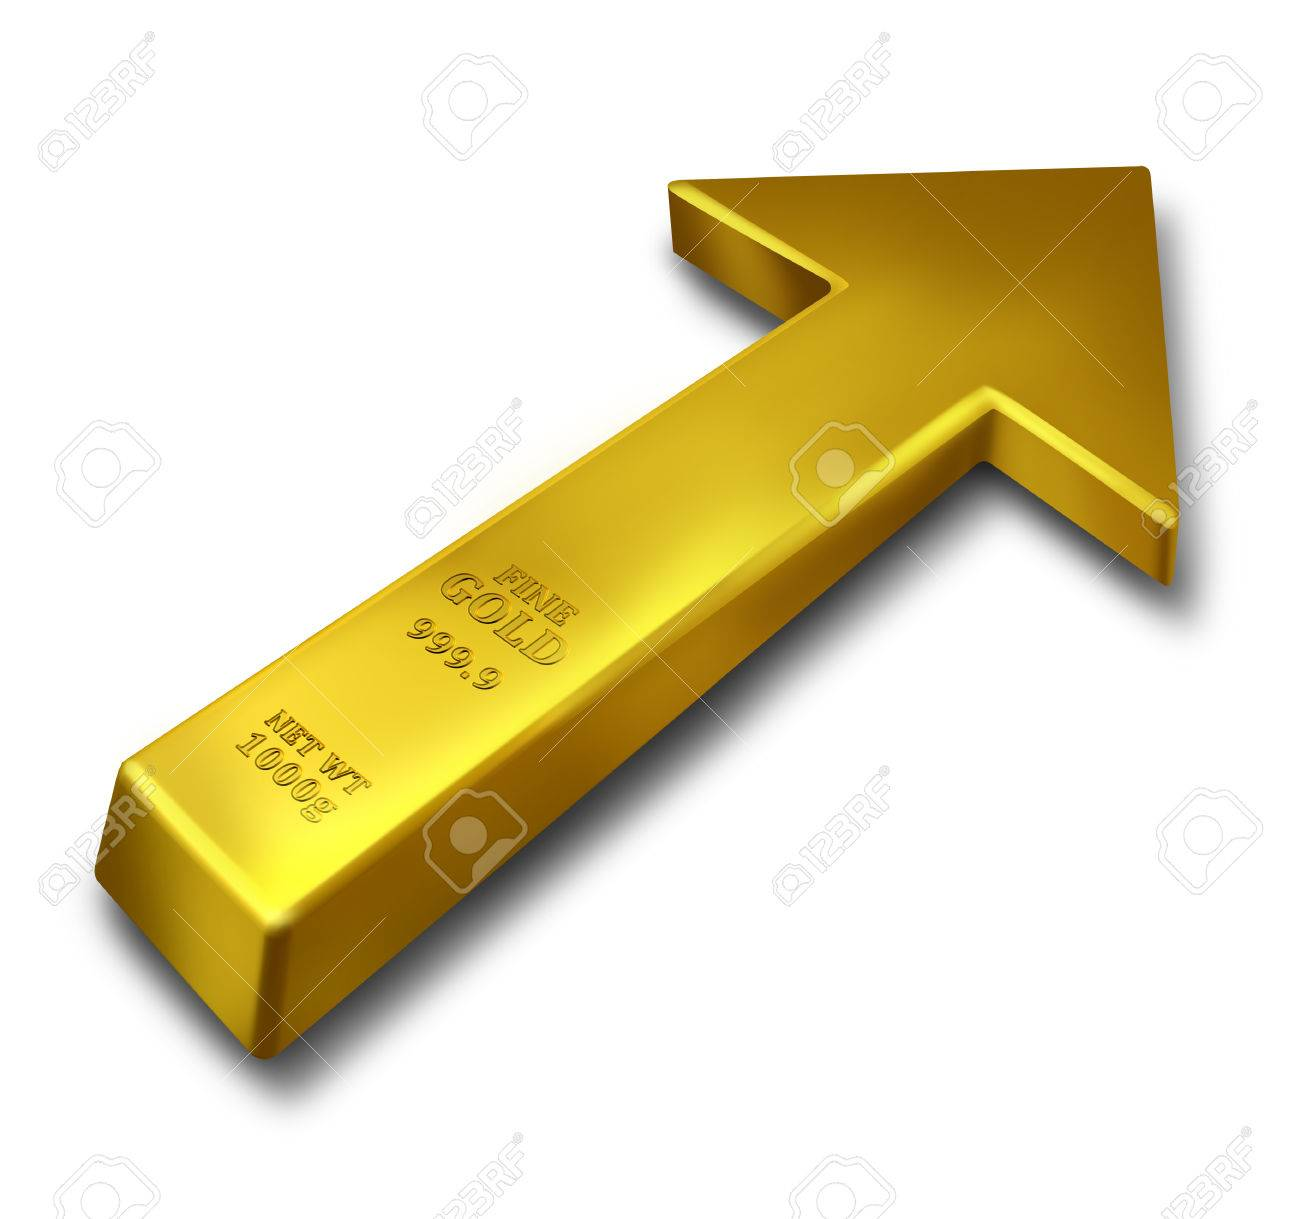 Gold rise business concept and commodities price increase symbol gold rise business concept and commodities price increase symbol as a bar of yellow precious metal buycottarizona Image collections